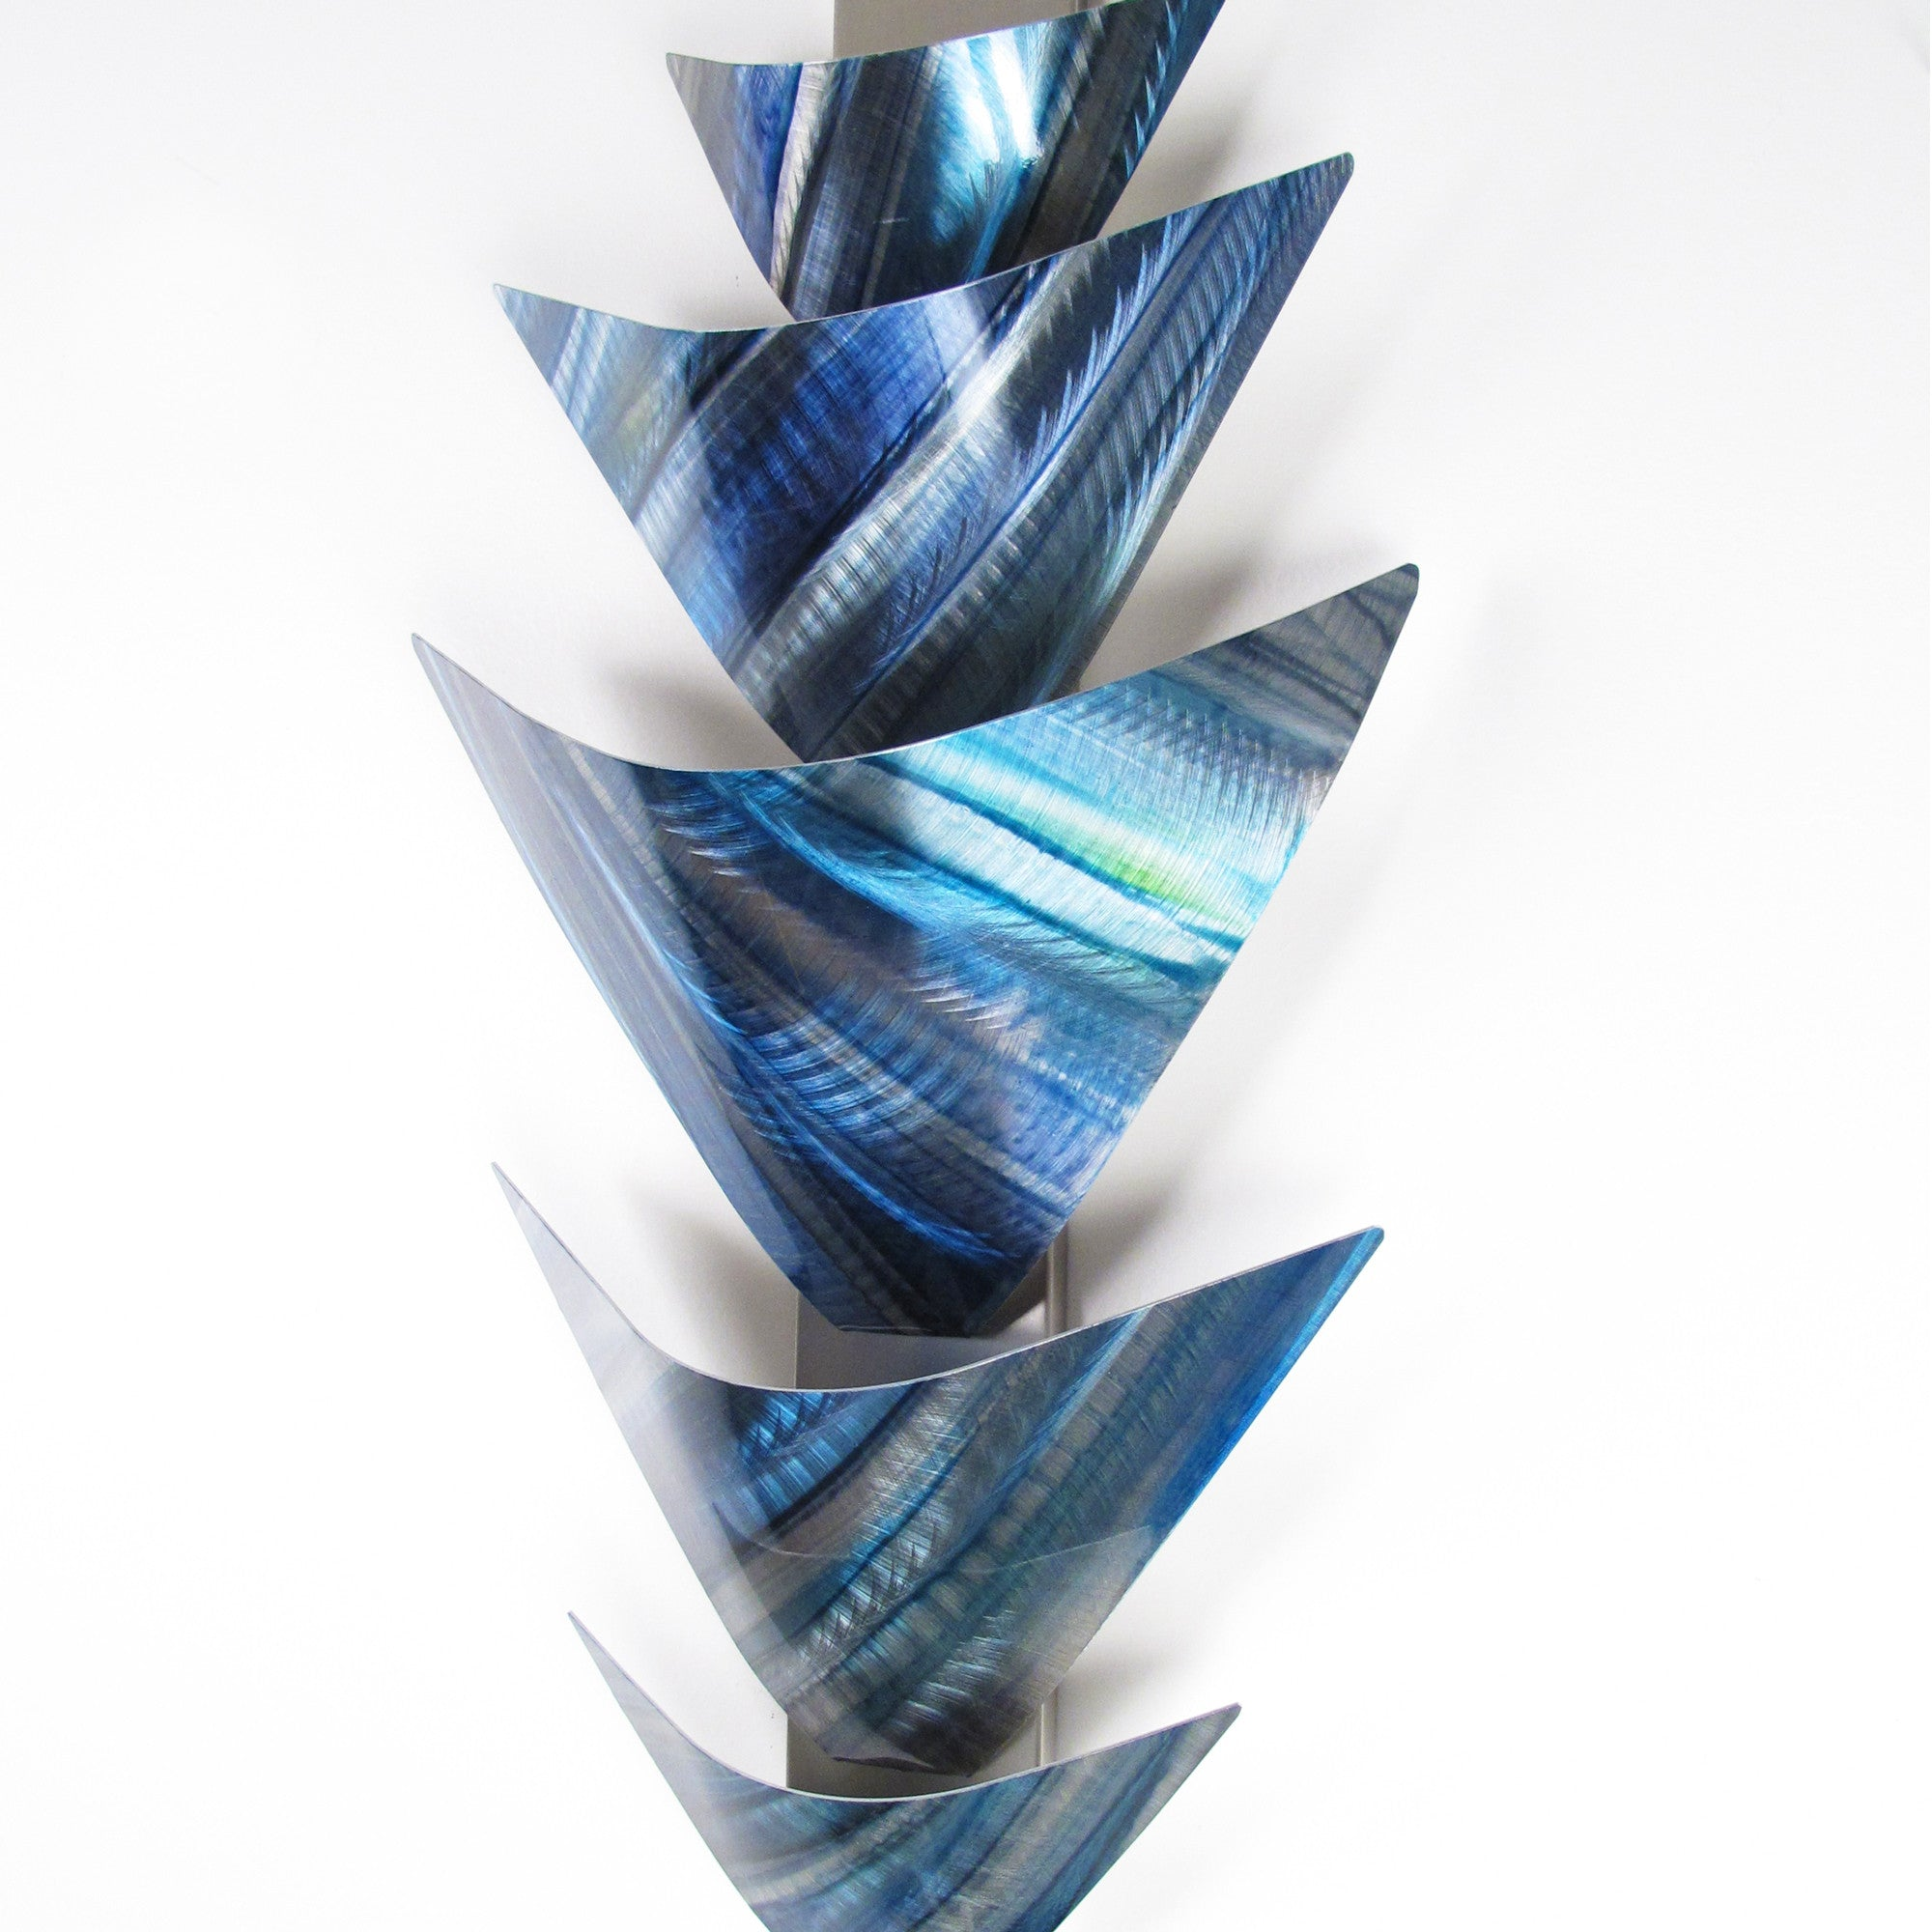 "Blue Metal Wall Decor Gorgeous Aurora Torchiere Series"" 40""x24"" Modern Abstract Metal Wall Art Design Ideas"